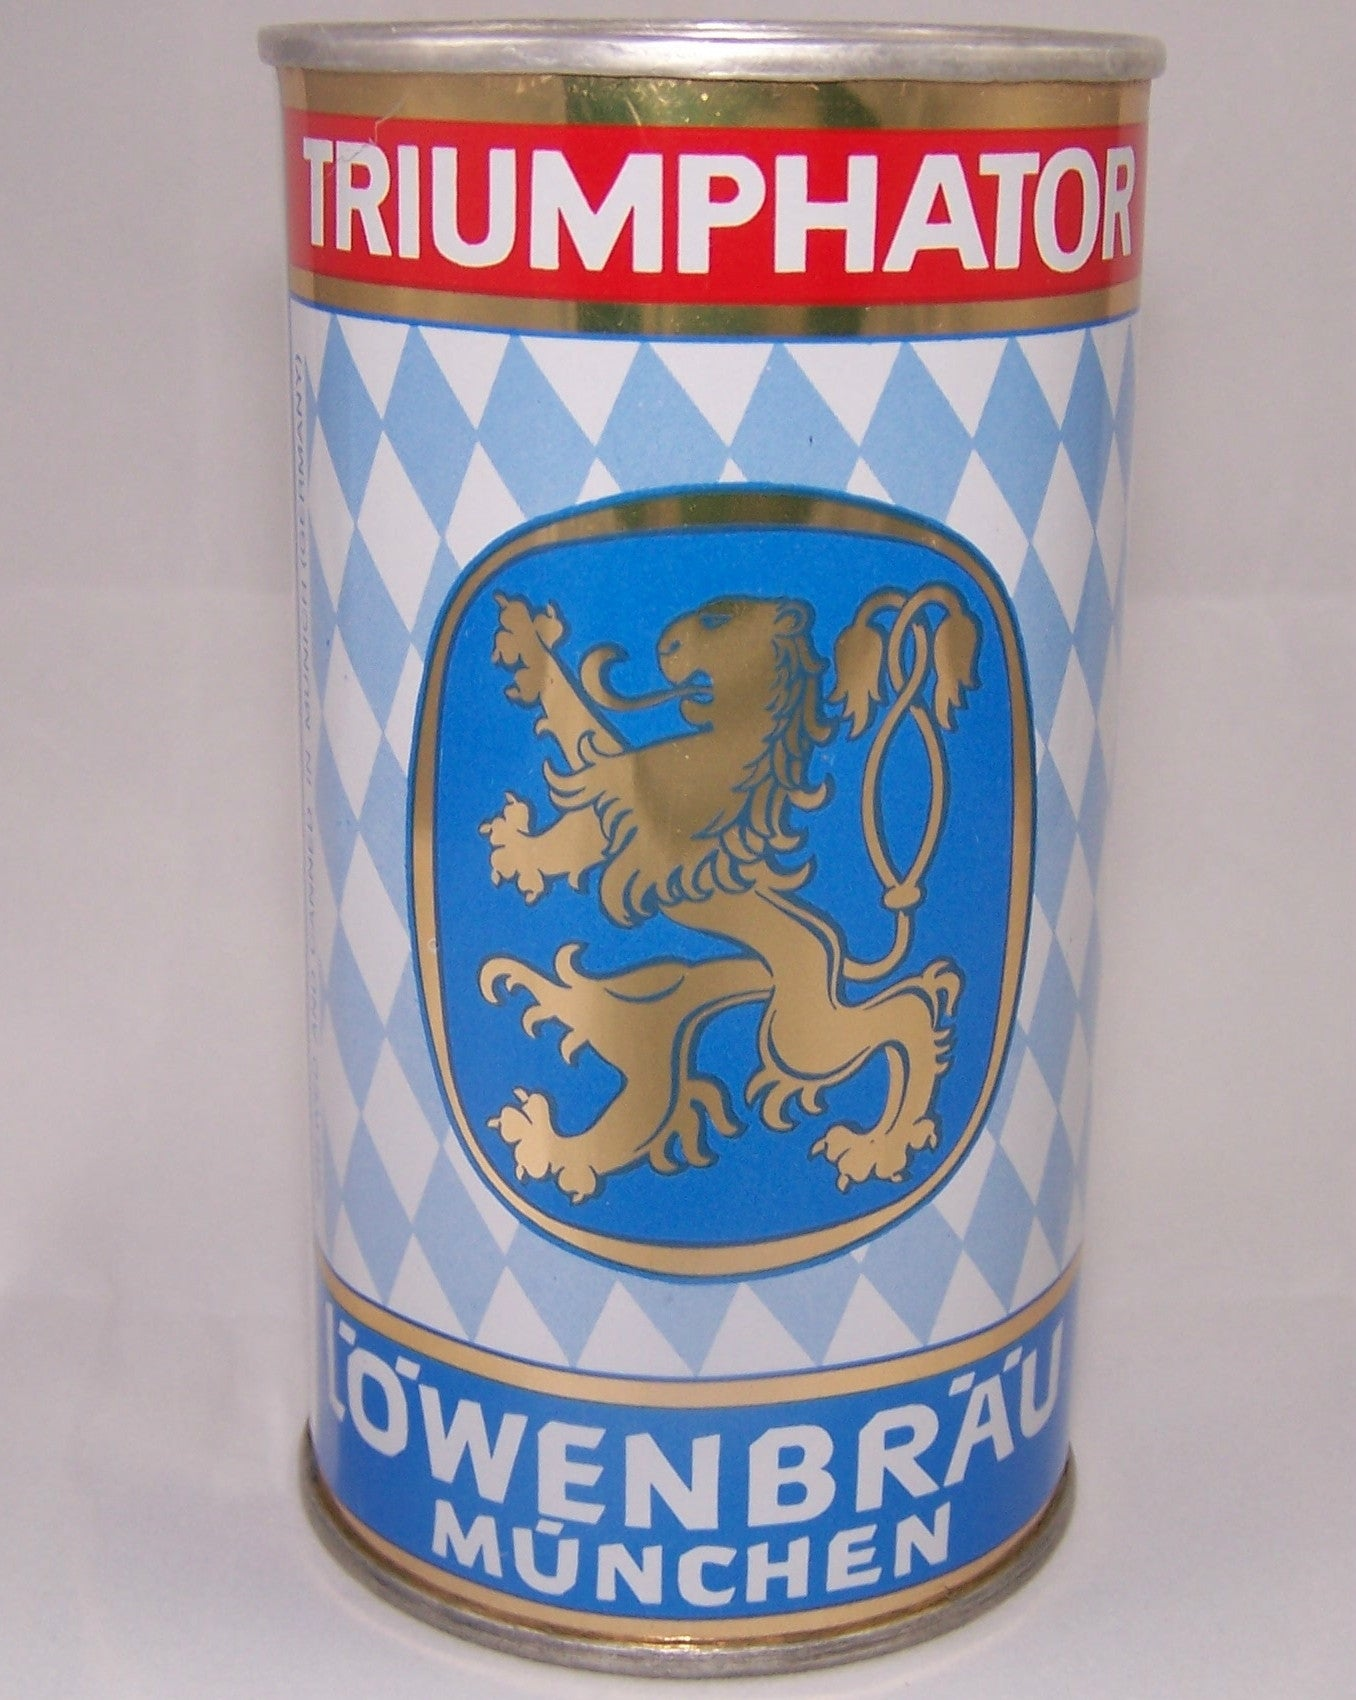 Lowenbrau Munchen Triumphator, Rolled can, Grade A1+ Sold 3/10/15